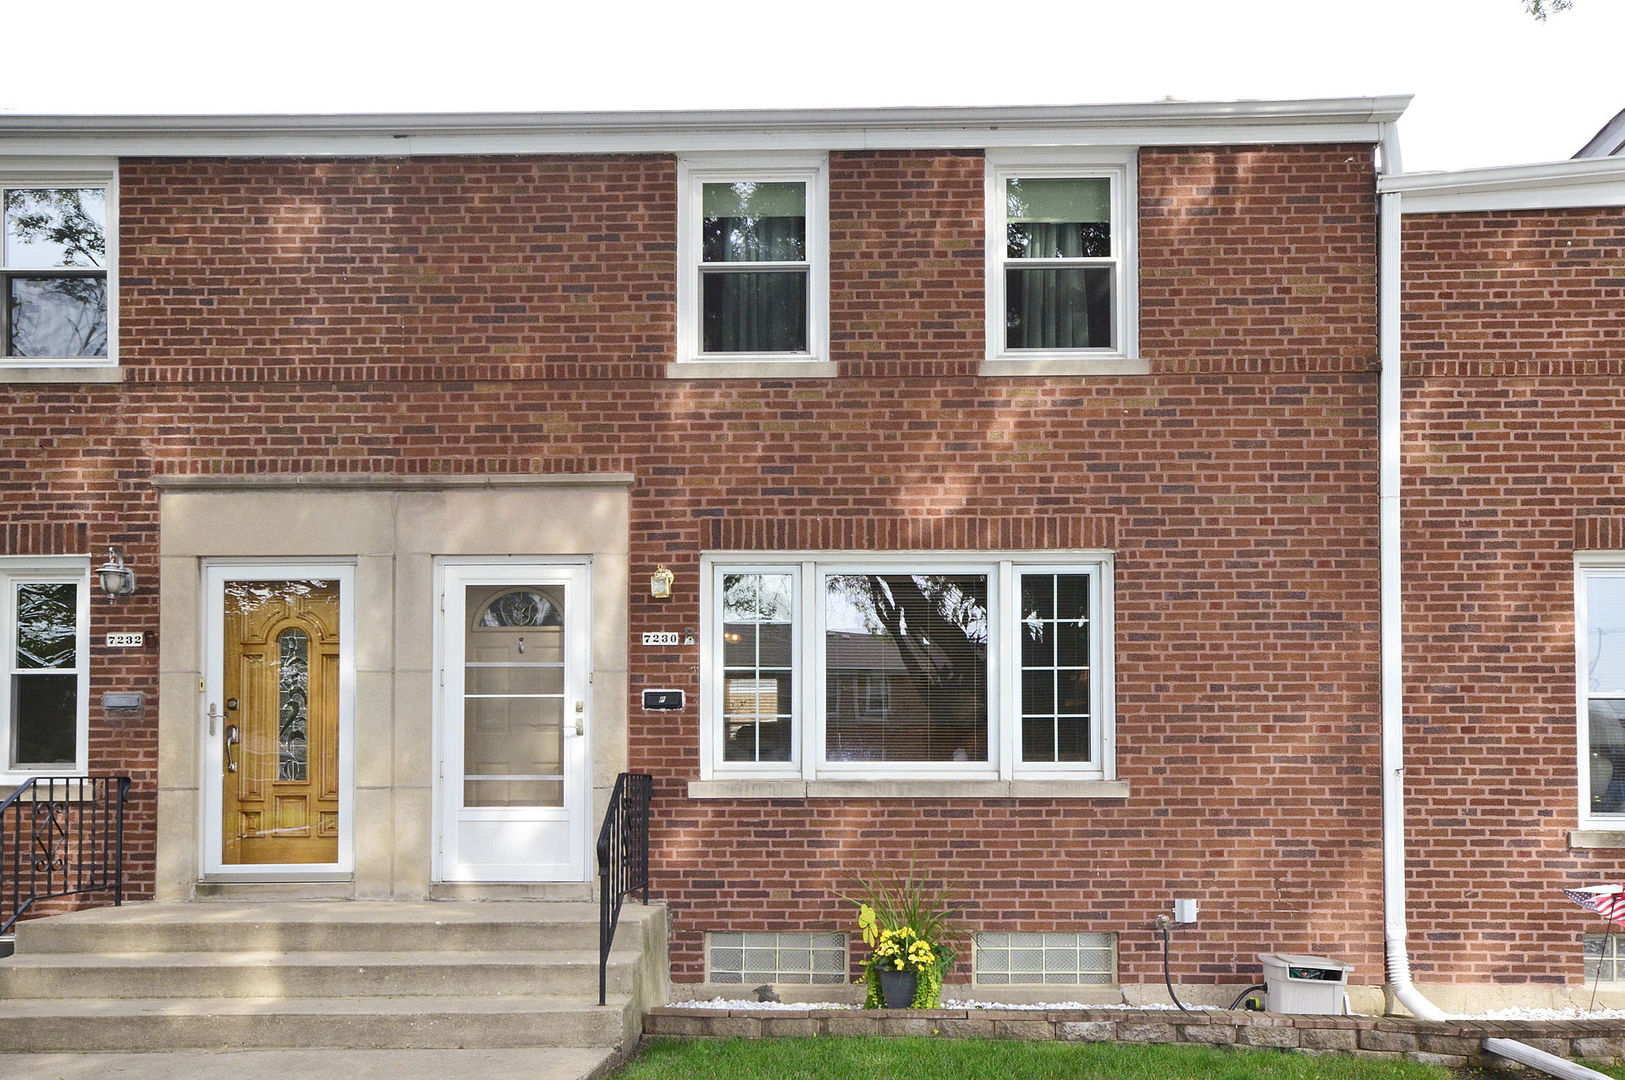 Photo of 7230 West Balmoral Avenue  CHICAGO  IL